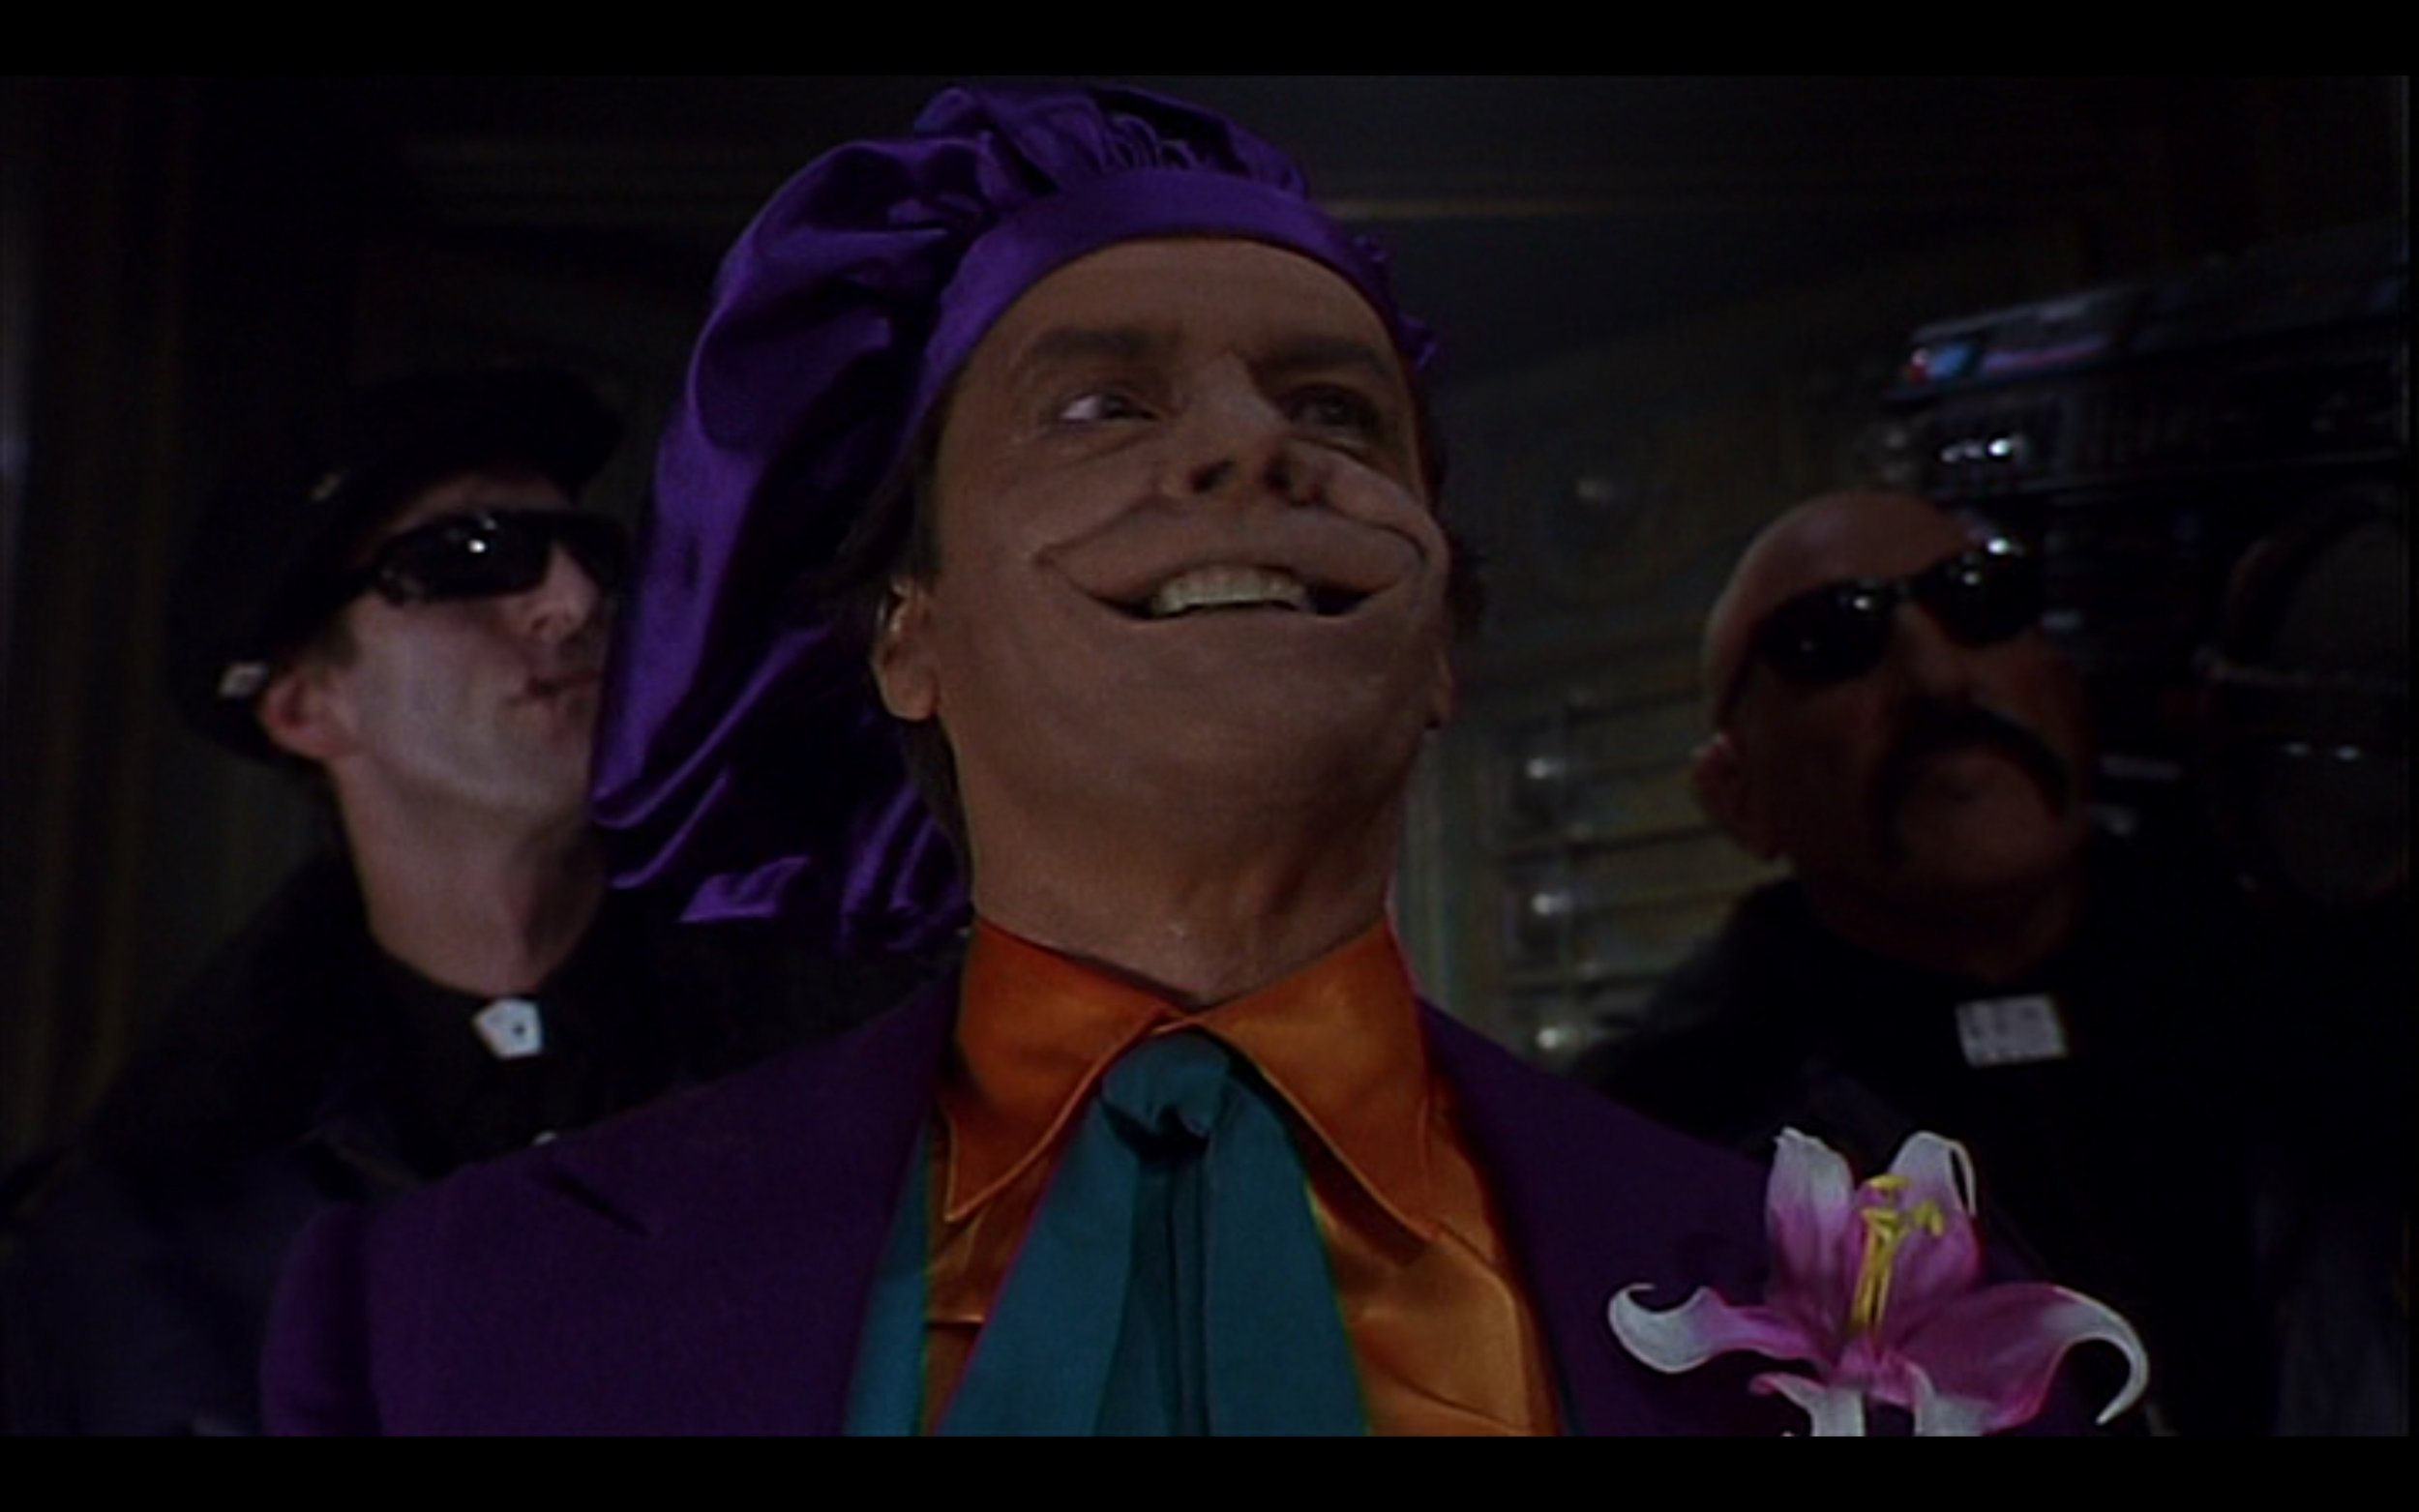 Figure 4: Joker's purple beret reminds us of one of the most iconic parts of a stereotypical artist's outfit in the film BATMAN (Burton 1989). Credit: Warner Brothers, The Gruber-Peters Company, Polygram Pictures.